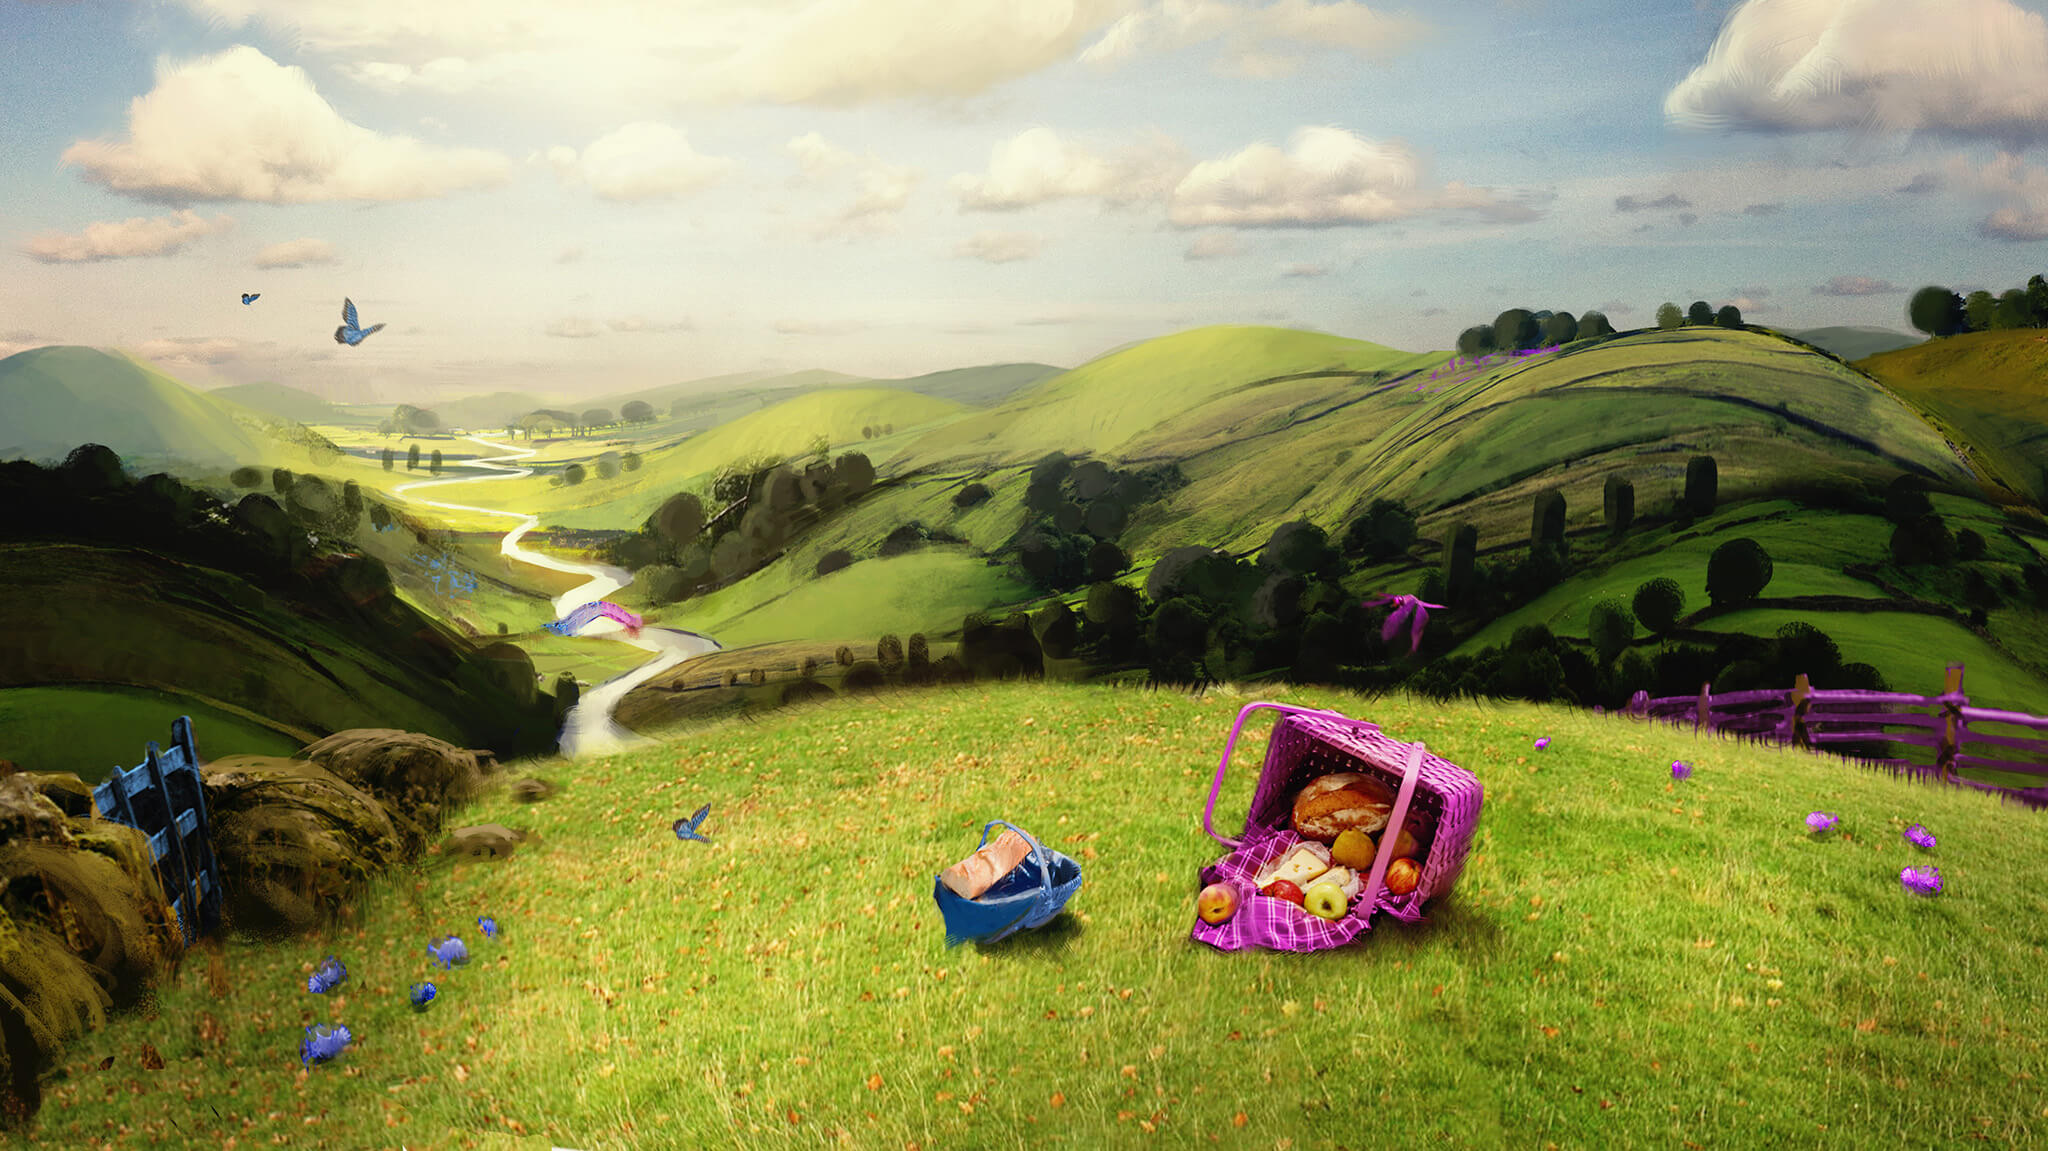 PediaSure_Picnic001